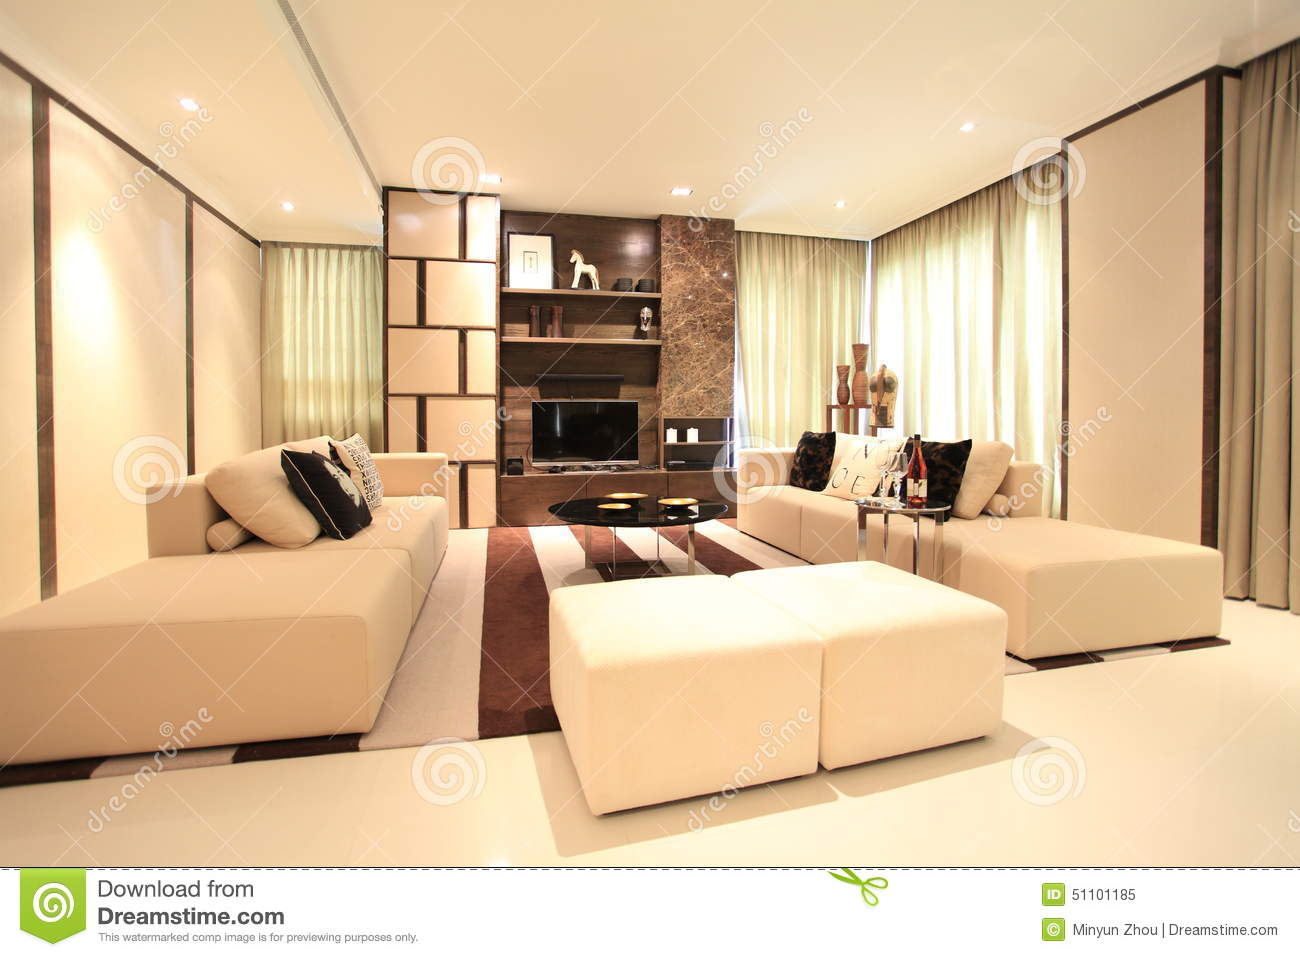 condominium living in malaysia Living in penang 542 likes a guide for foreigners living in penang, malaysia.